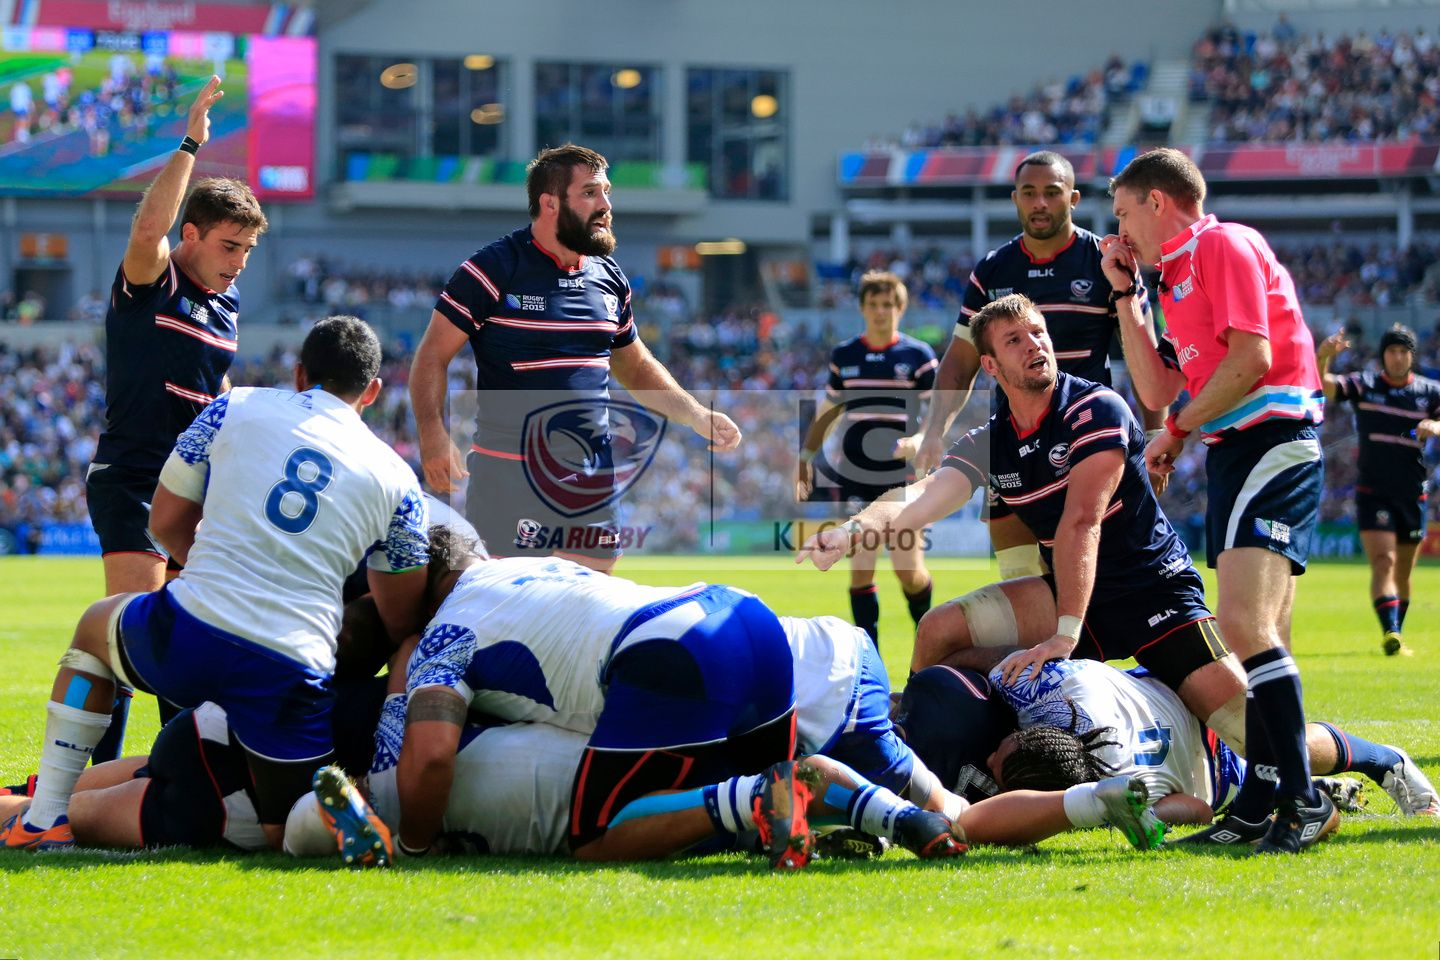 Pin On Rugby Usa